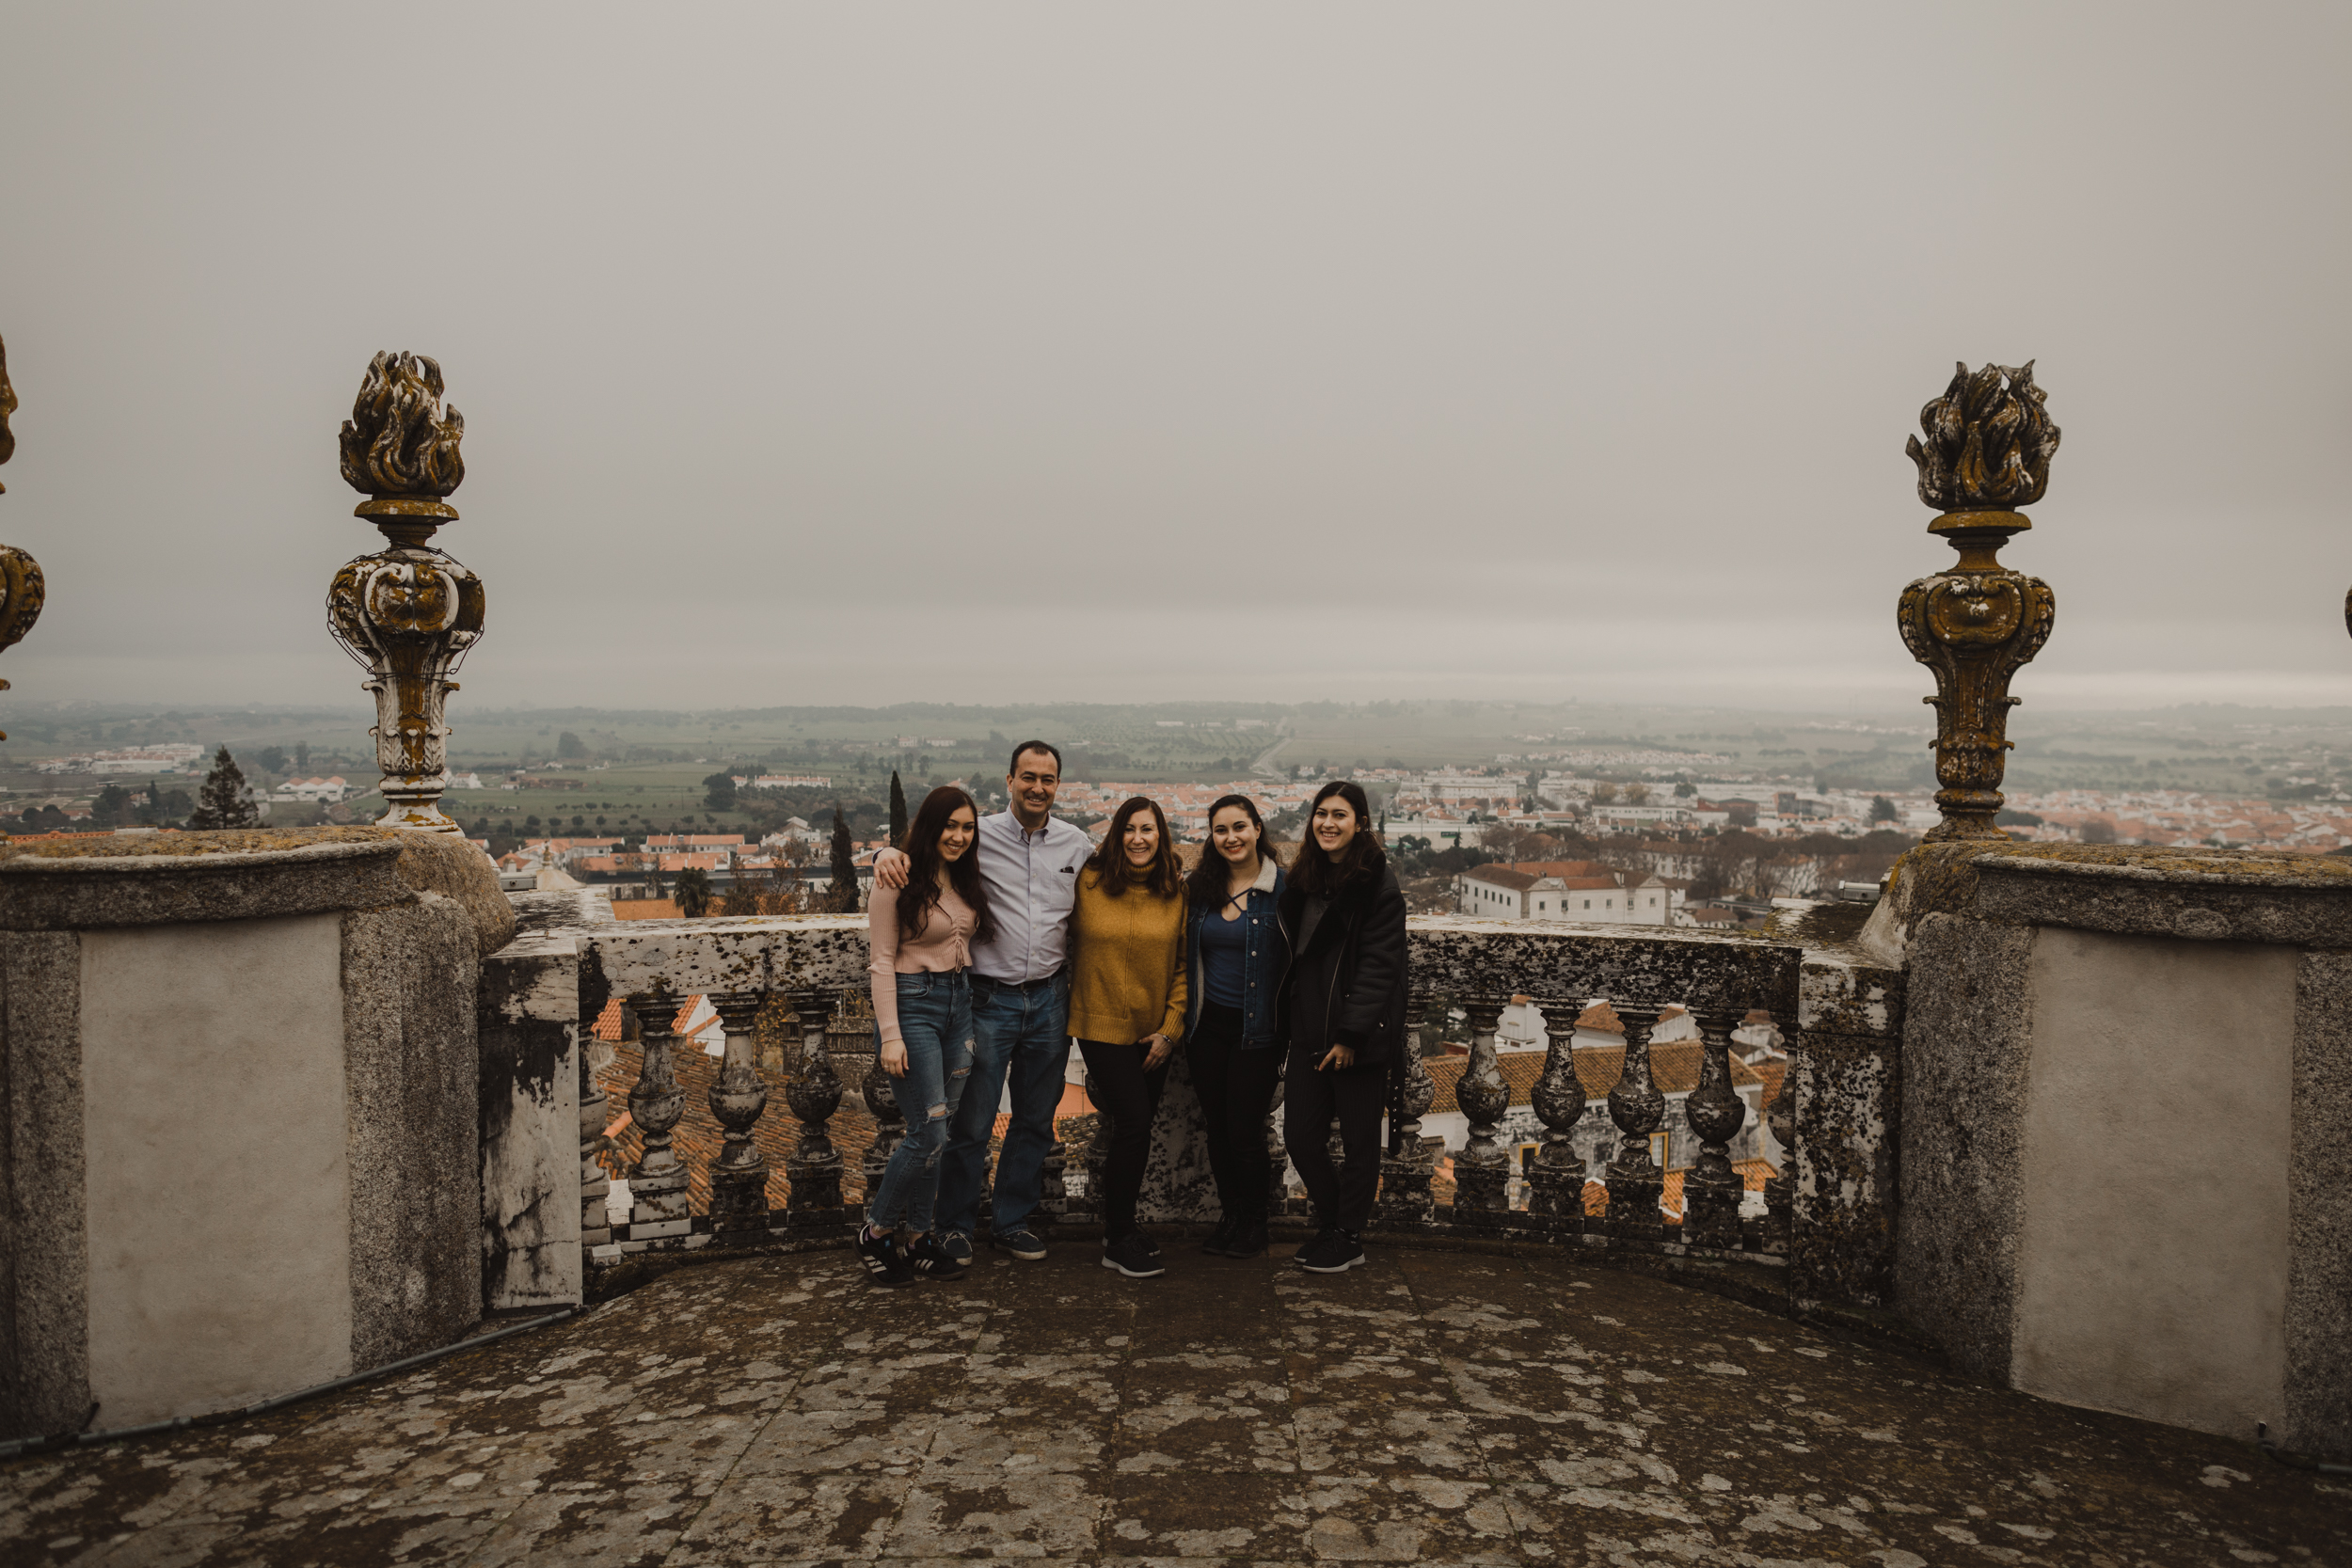 The family at Evora Cathedral